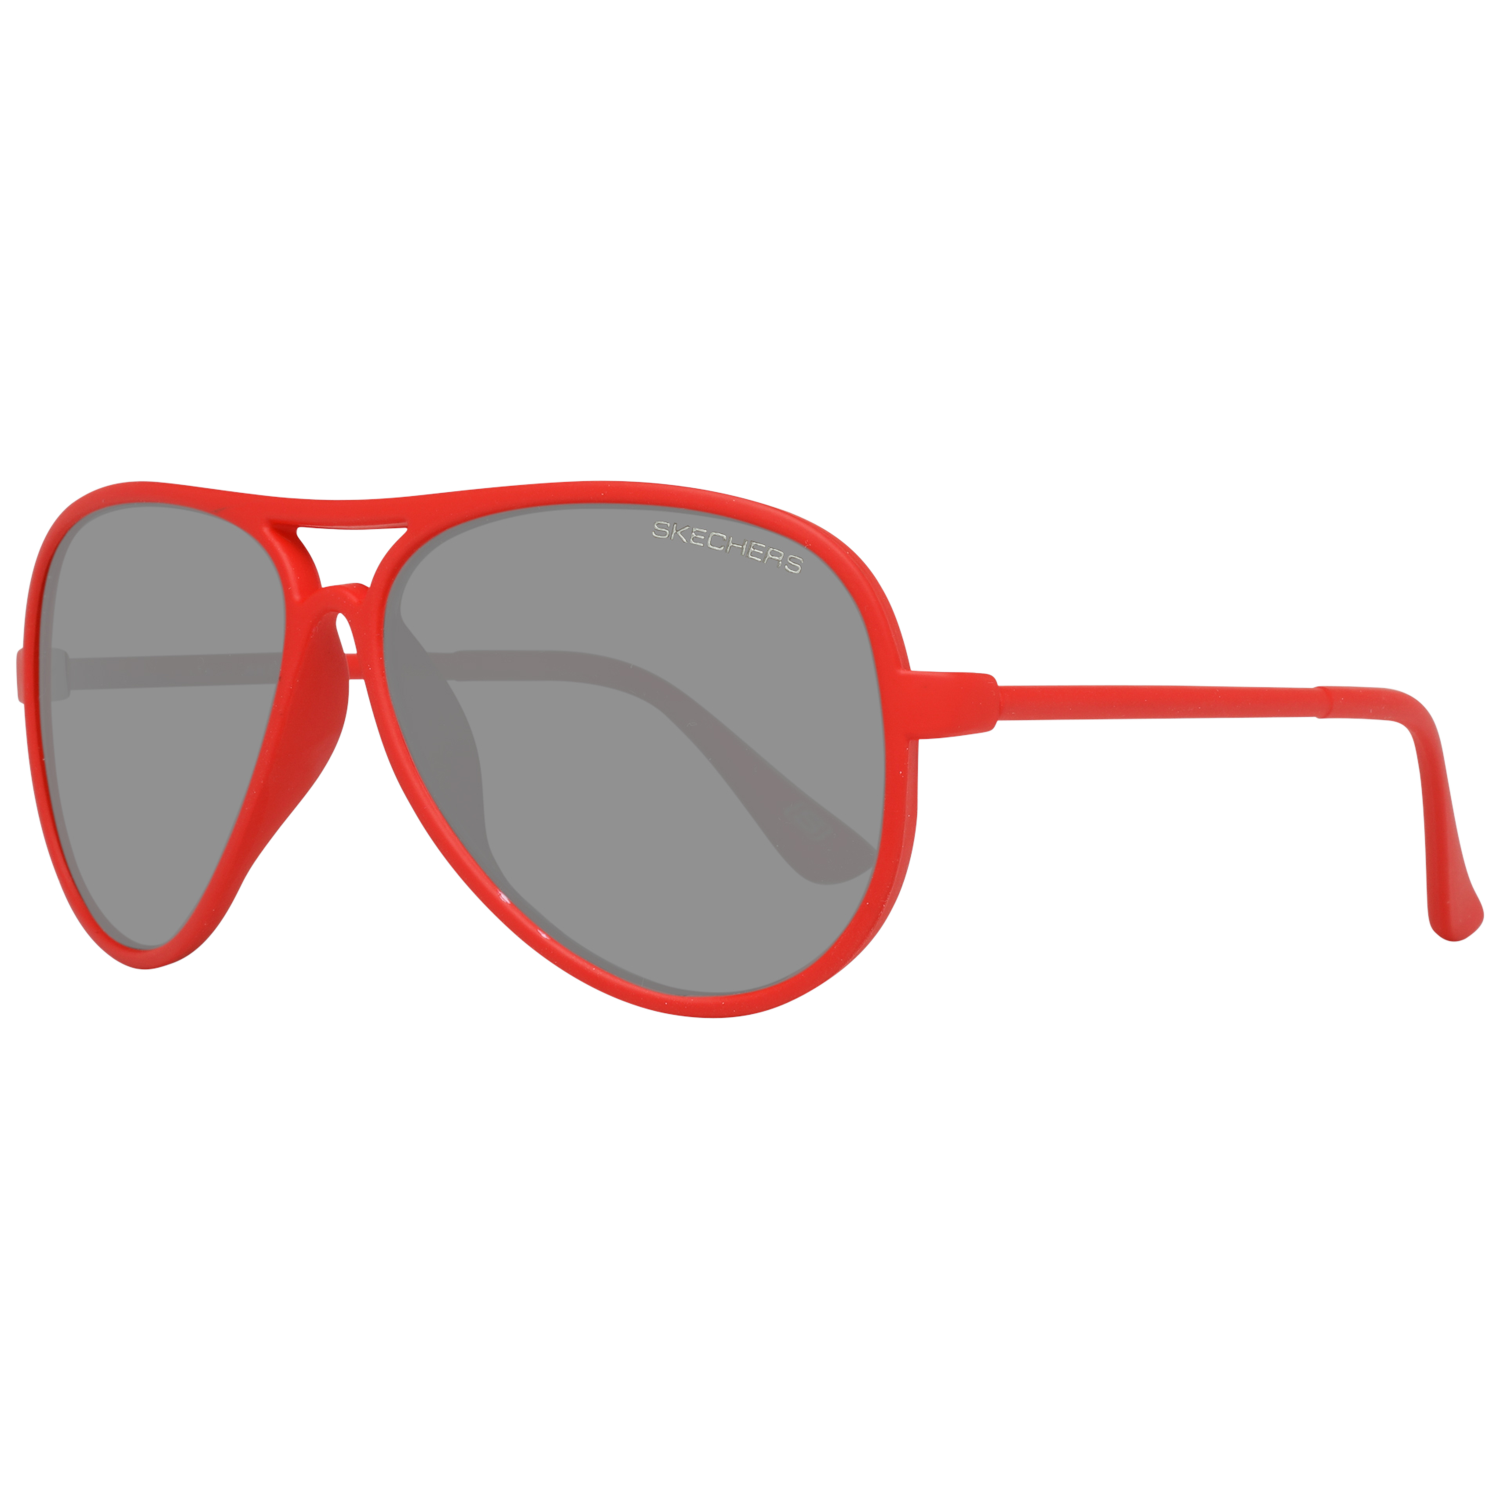 Skechers Sunglasses SE9004 67A 52 Red